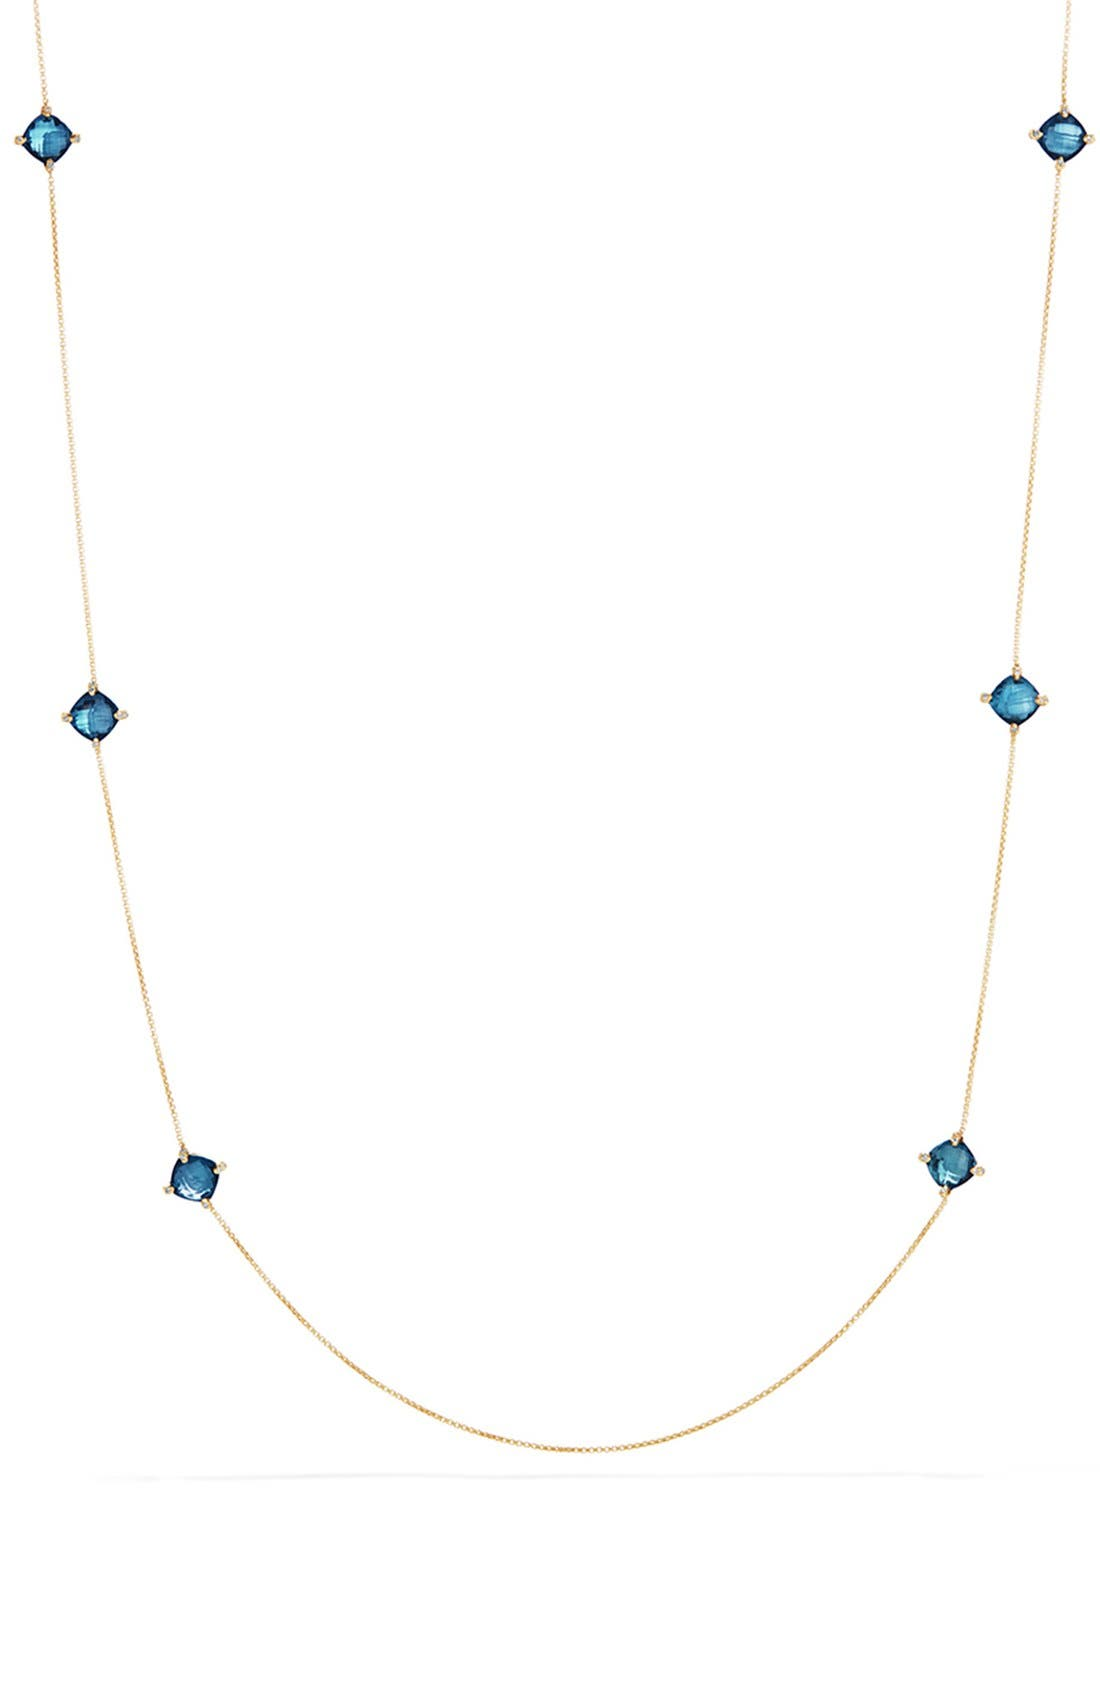 David Yurman 'Châtelaine' Long Semiprecious Stone Necklace with Diamonds